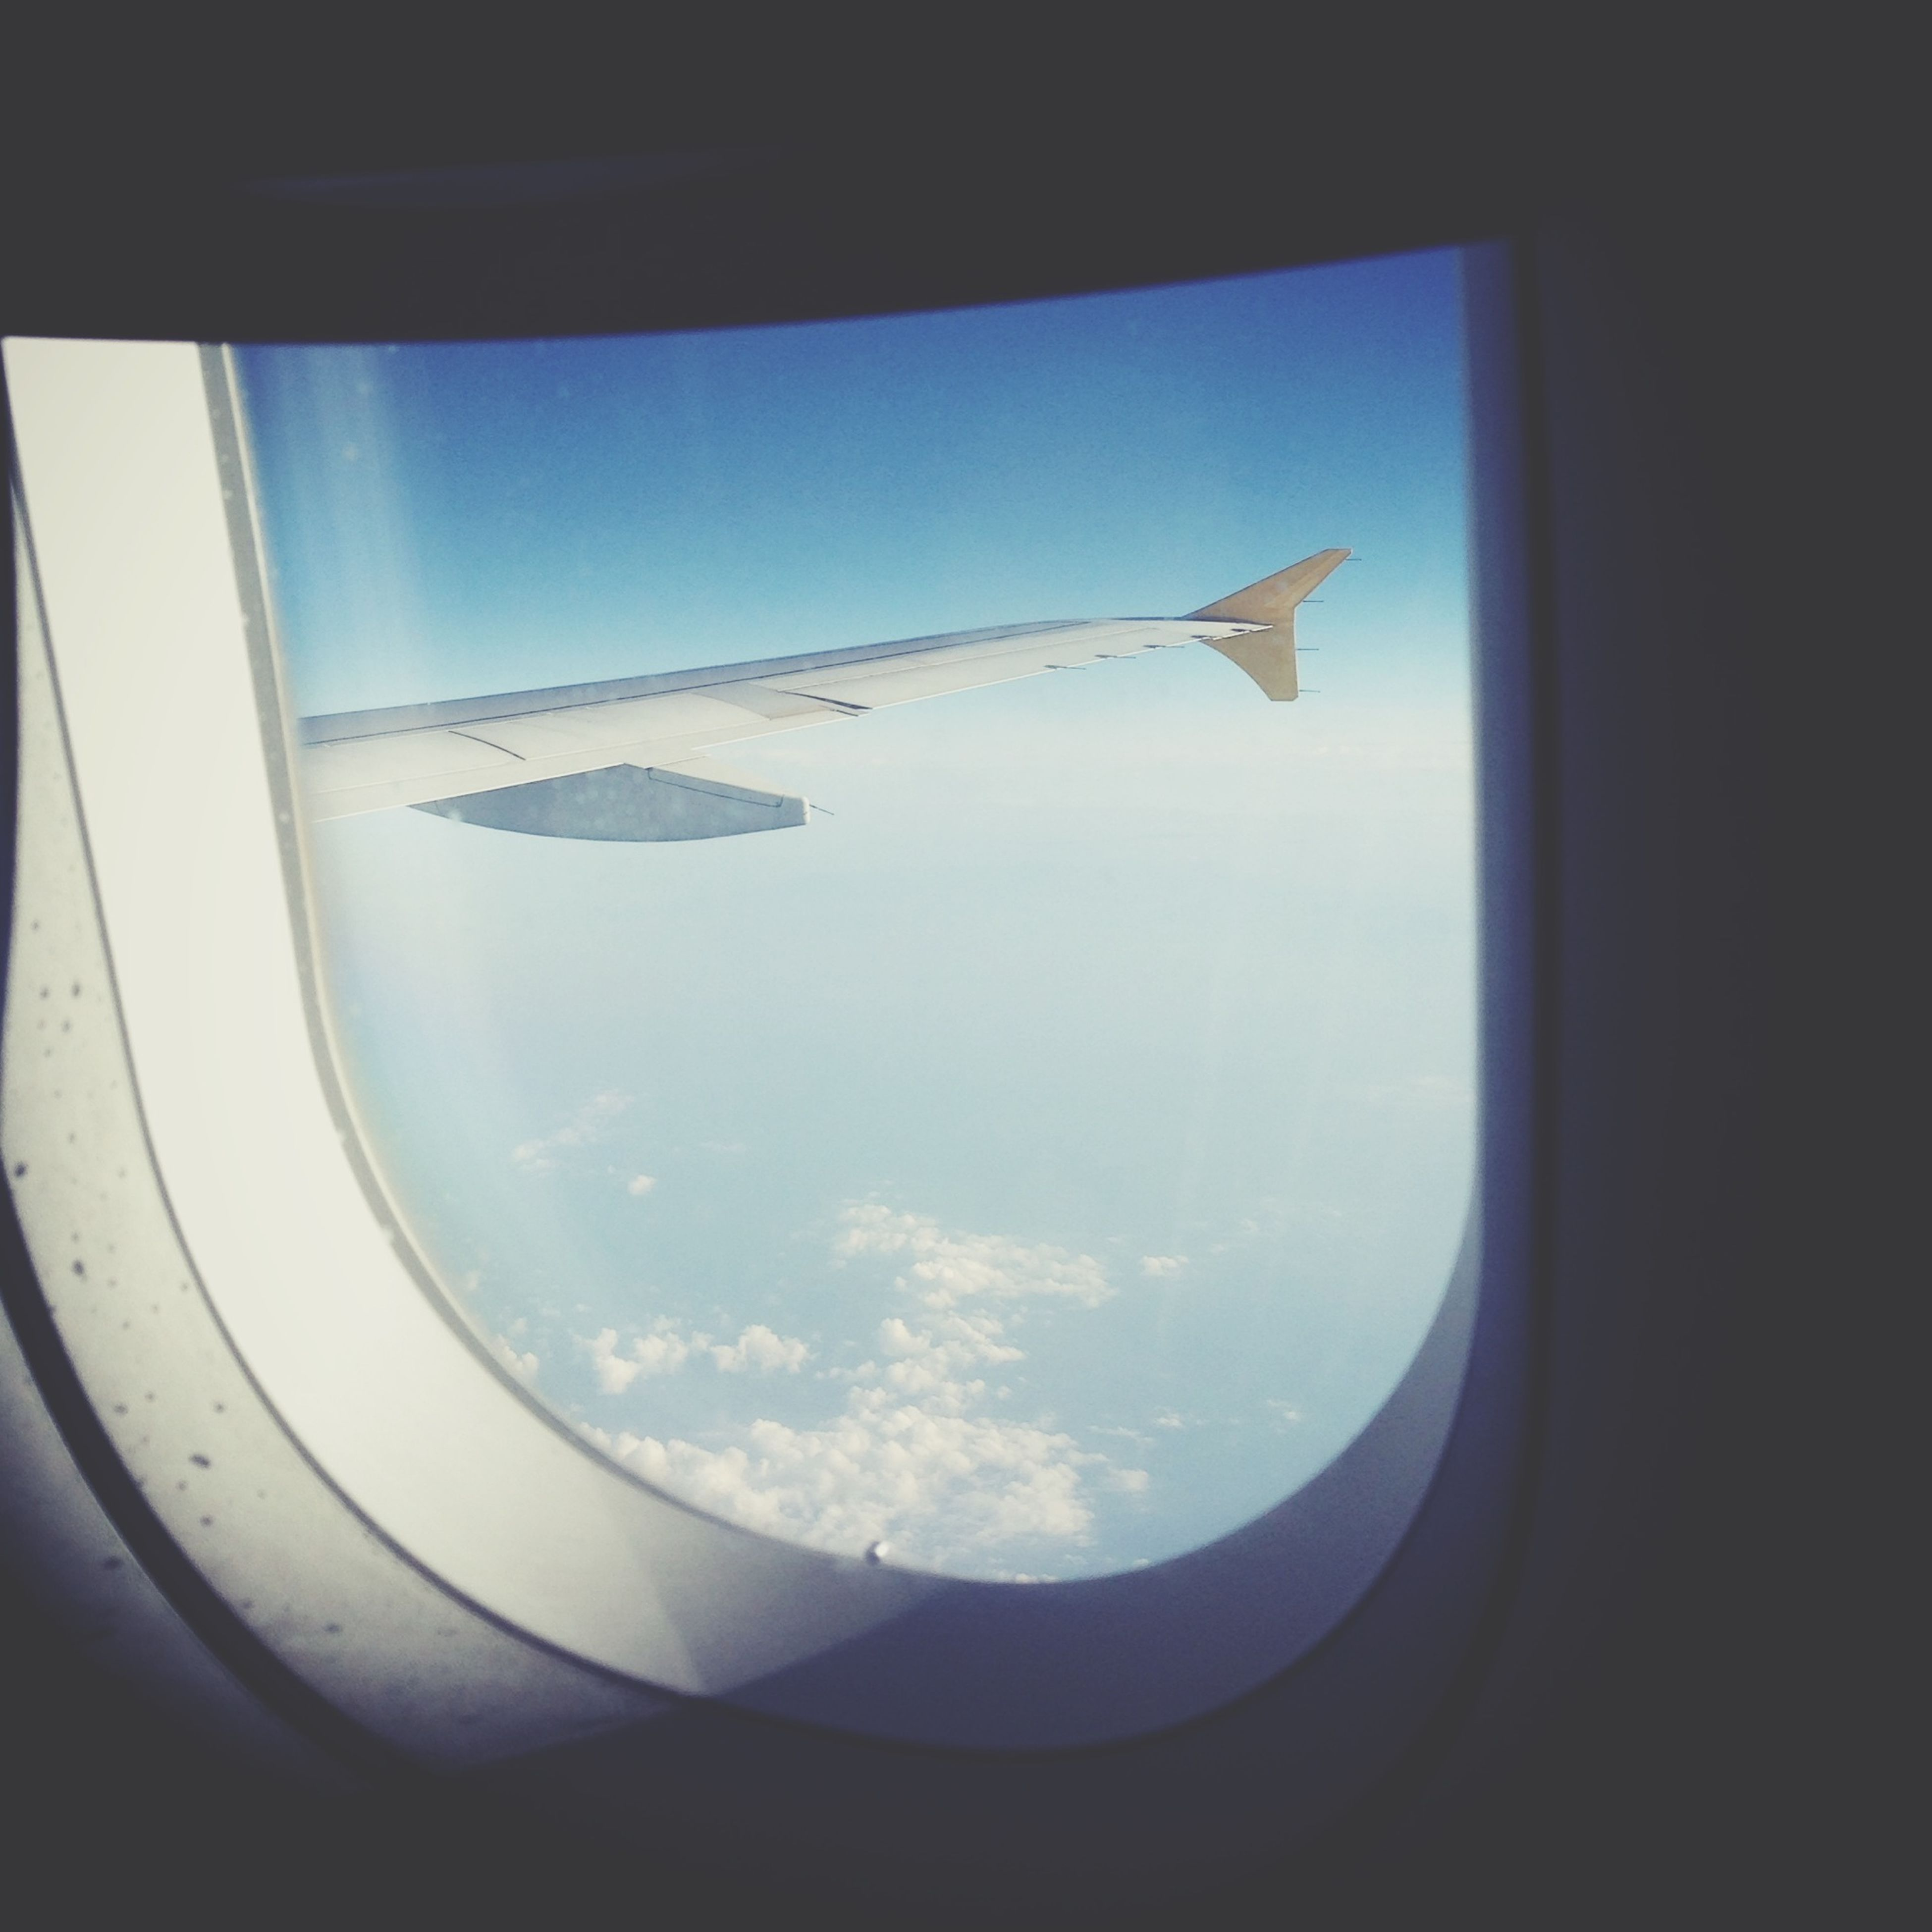 airplane, flying, air vehicle, transportation, window, mode of transport, vehicle interior, aircraft wing, sky, transparent, glass - material, mid-air, part of, journey, indoors, cropped, travel, looking through window, aircraft, public transportation